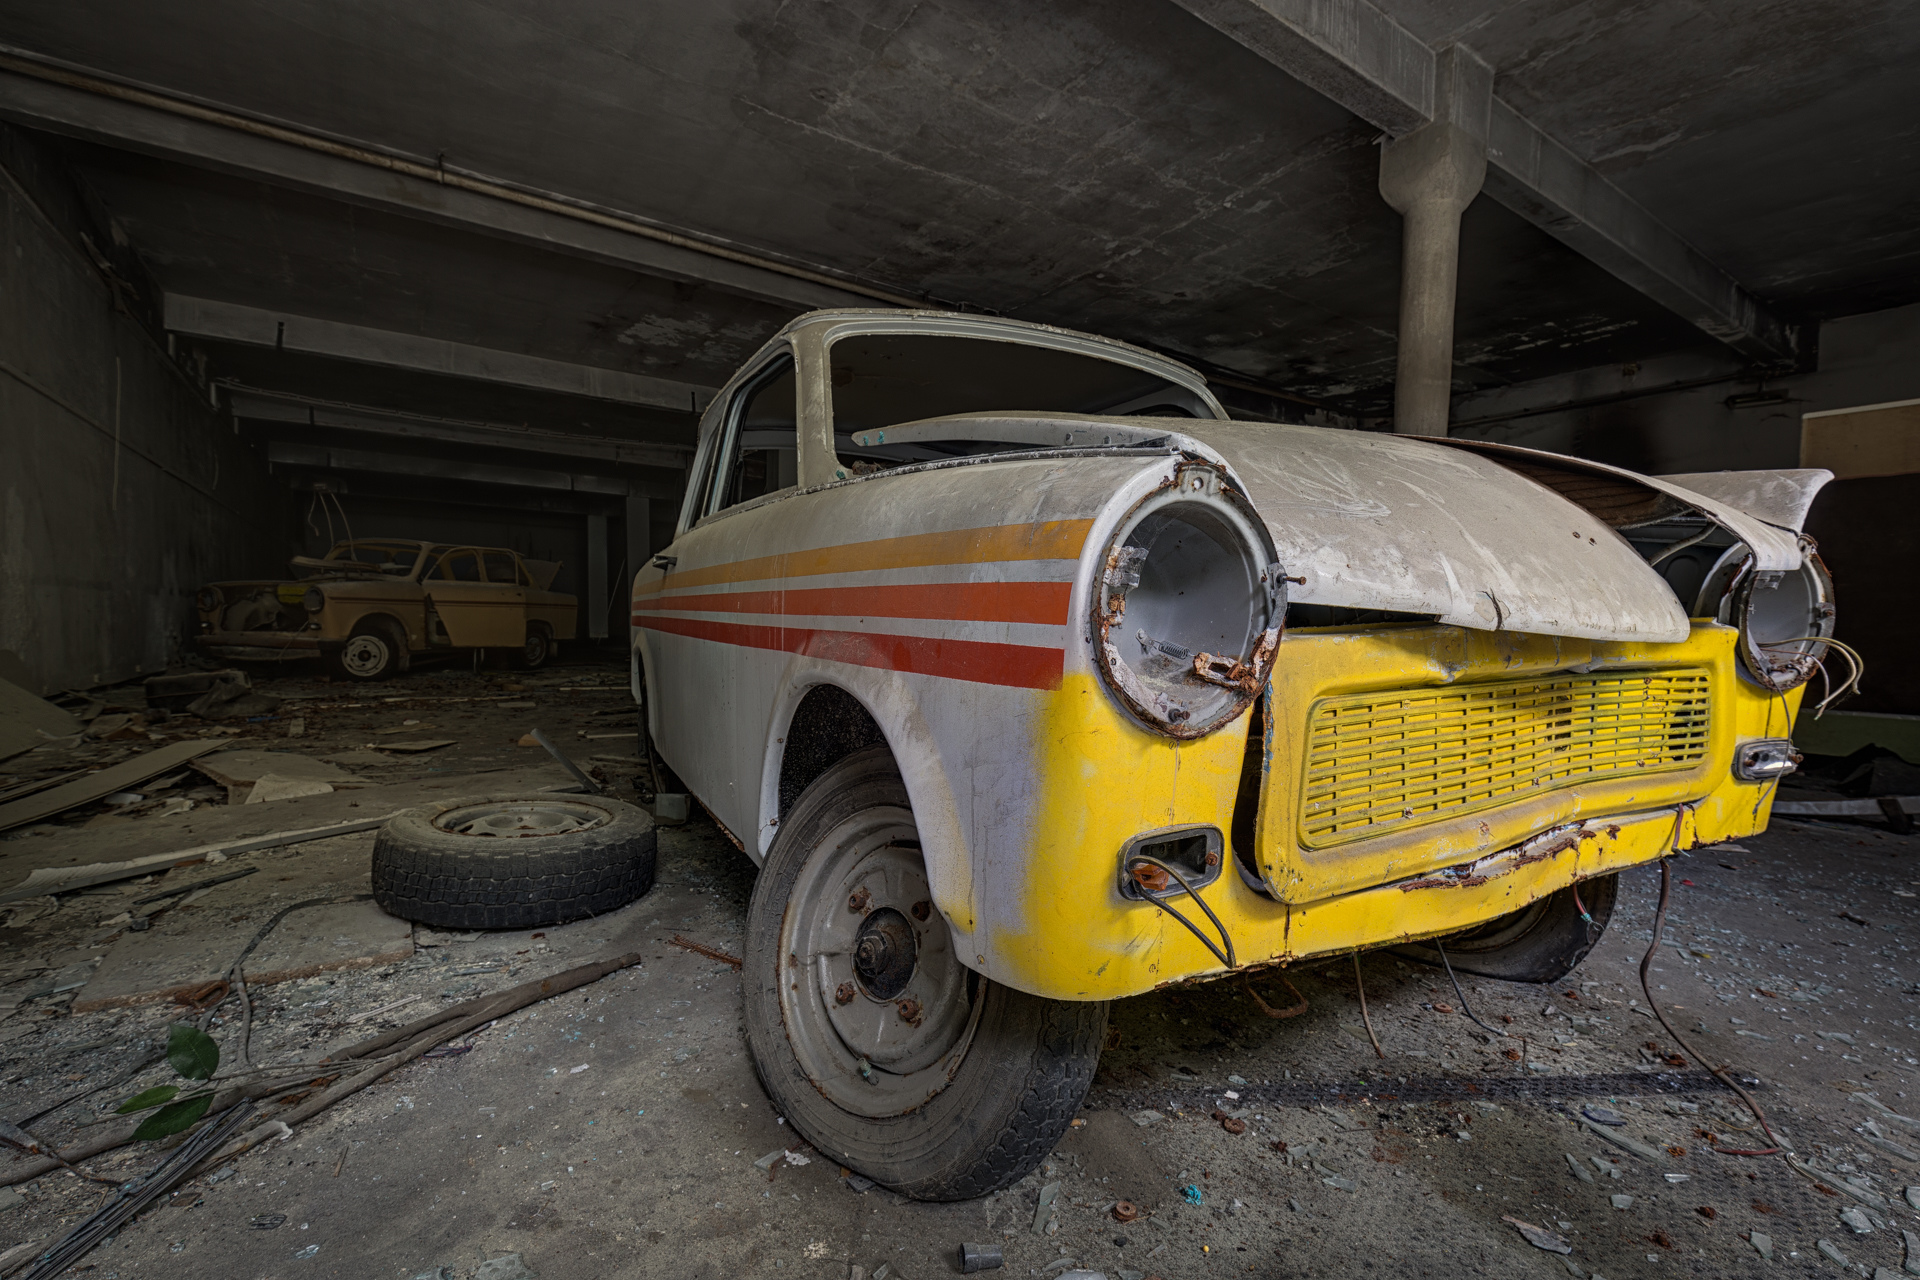 Urban Exploration - VAB Trabant - Icons of the Past